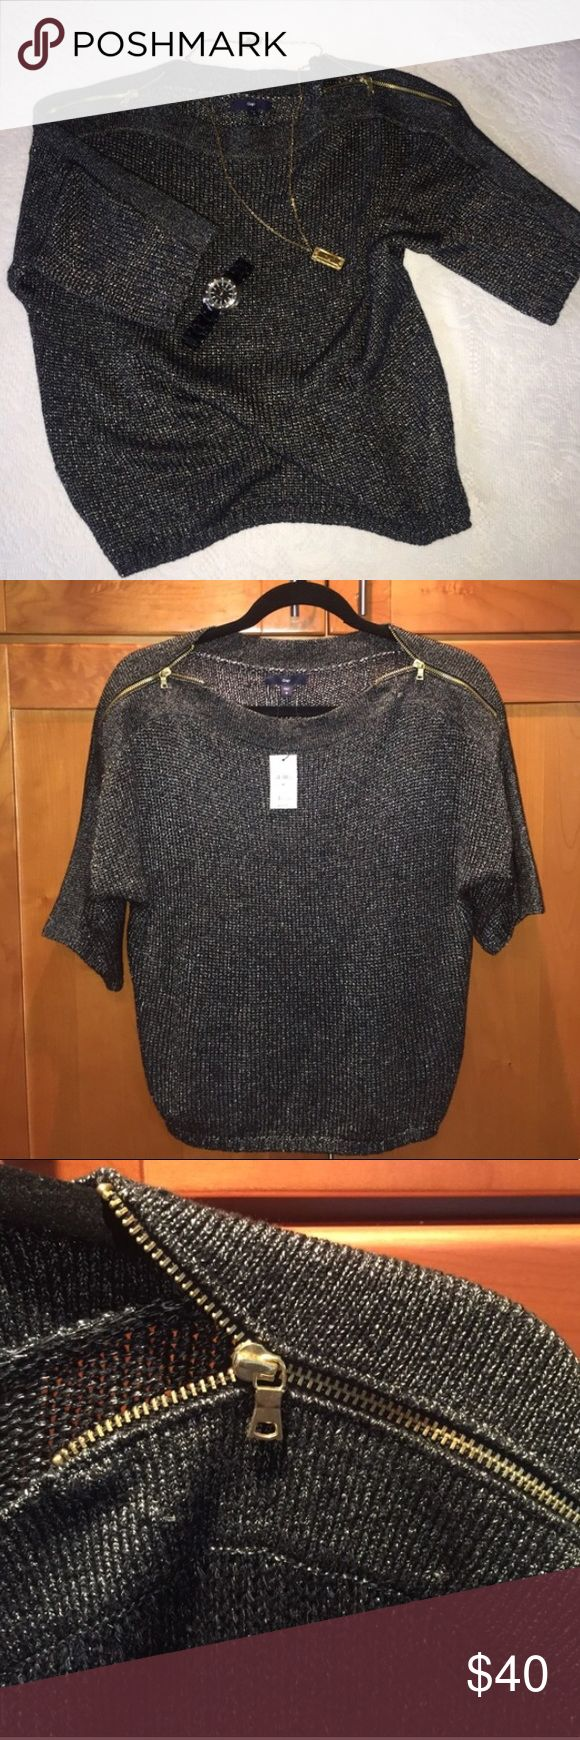 Gap Sweater Women's Size M NWT Brand New With Tags. Size M GAP Short Sleeve Sweater Top. Working Gold Zippers on Shoulders. 74% Acrylic 26% Nylon. Has some areas where yarn is pulled out a little (see 3rd pic under zipper) but this seems to be the nature of the material. Super soft | Open to offers! :) ✅ Offers Welcomed ✅ Bundle & SAVE! (Add 1 time or more to a bundle & get private discount!)  🛃📦 📦 📦 Fast Shipping! 🚫 No Trades GAP Sweaters Crew & Scoop Necks